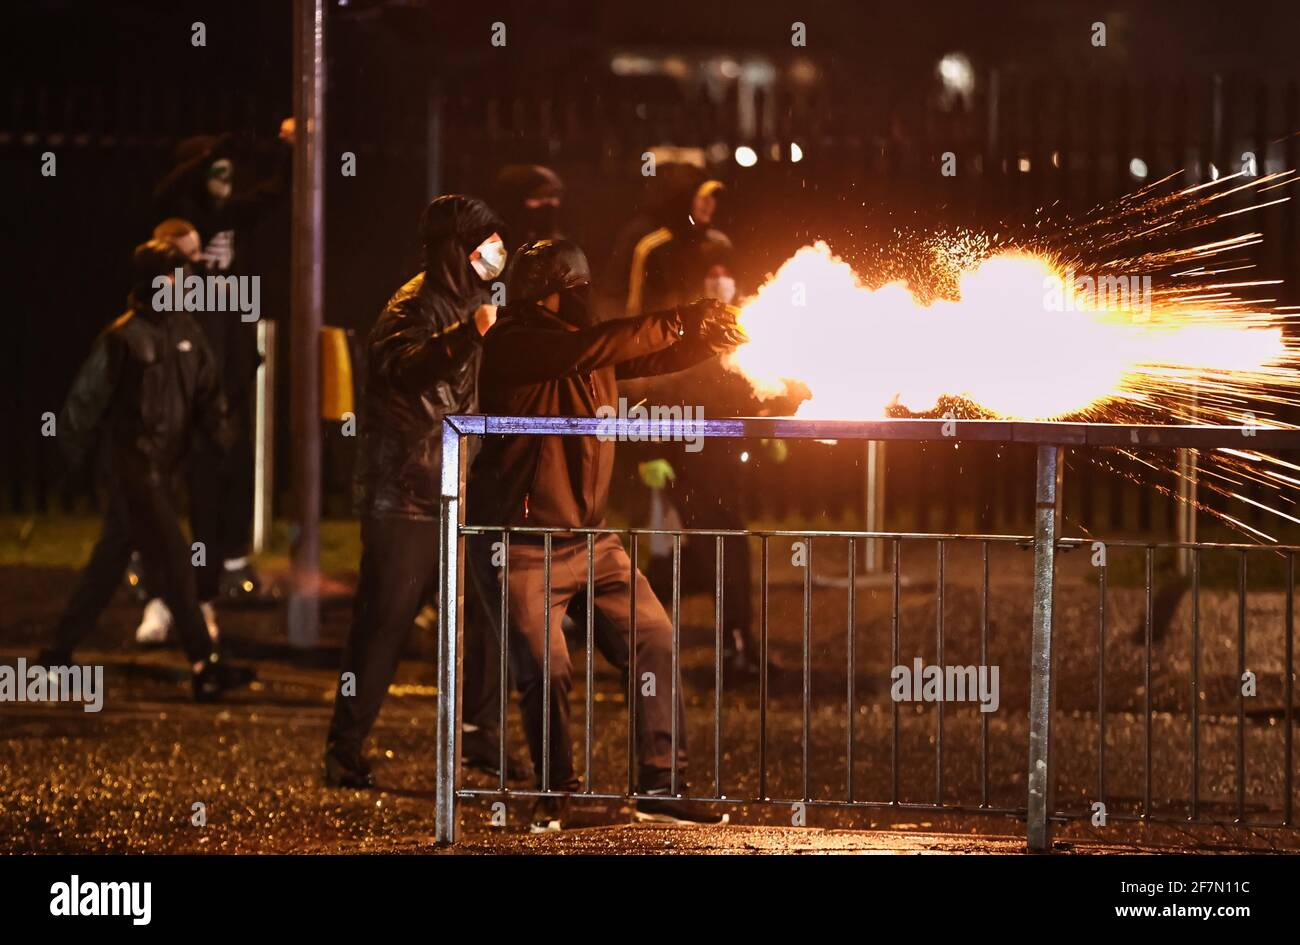 Youths fire fireworks at the PSNI on the Springfield road, during further unrest in Belfast. Picture date: Thursday April 8, 2021. Stock Photo